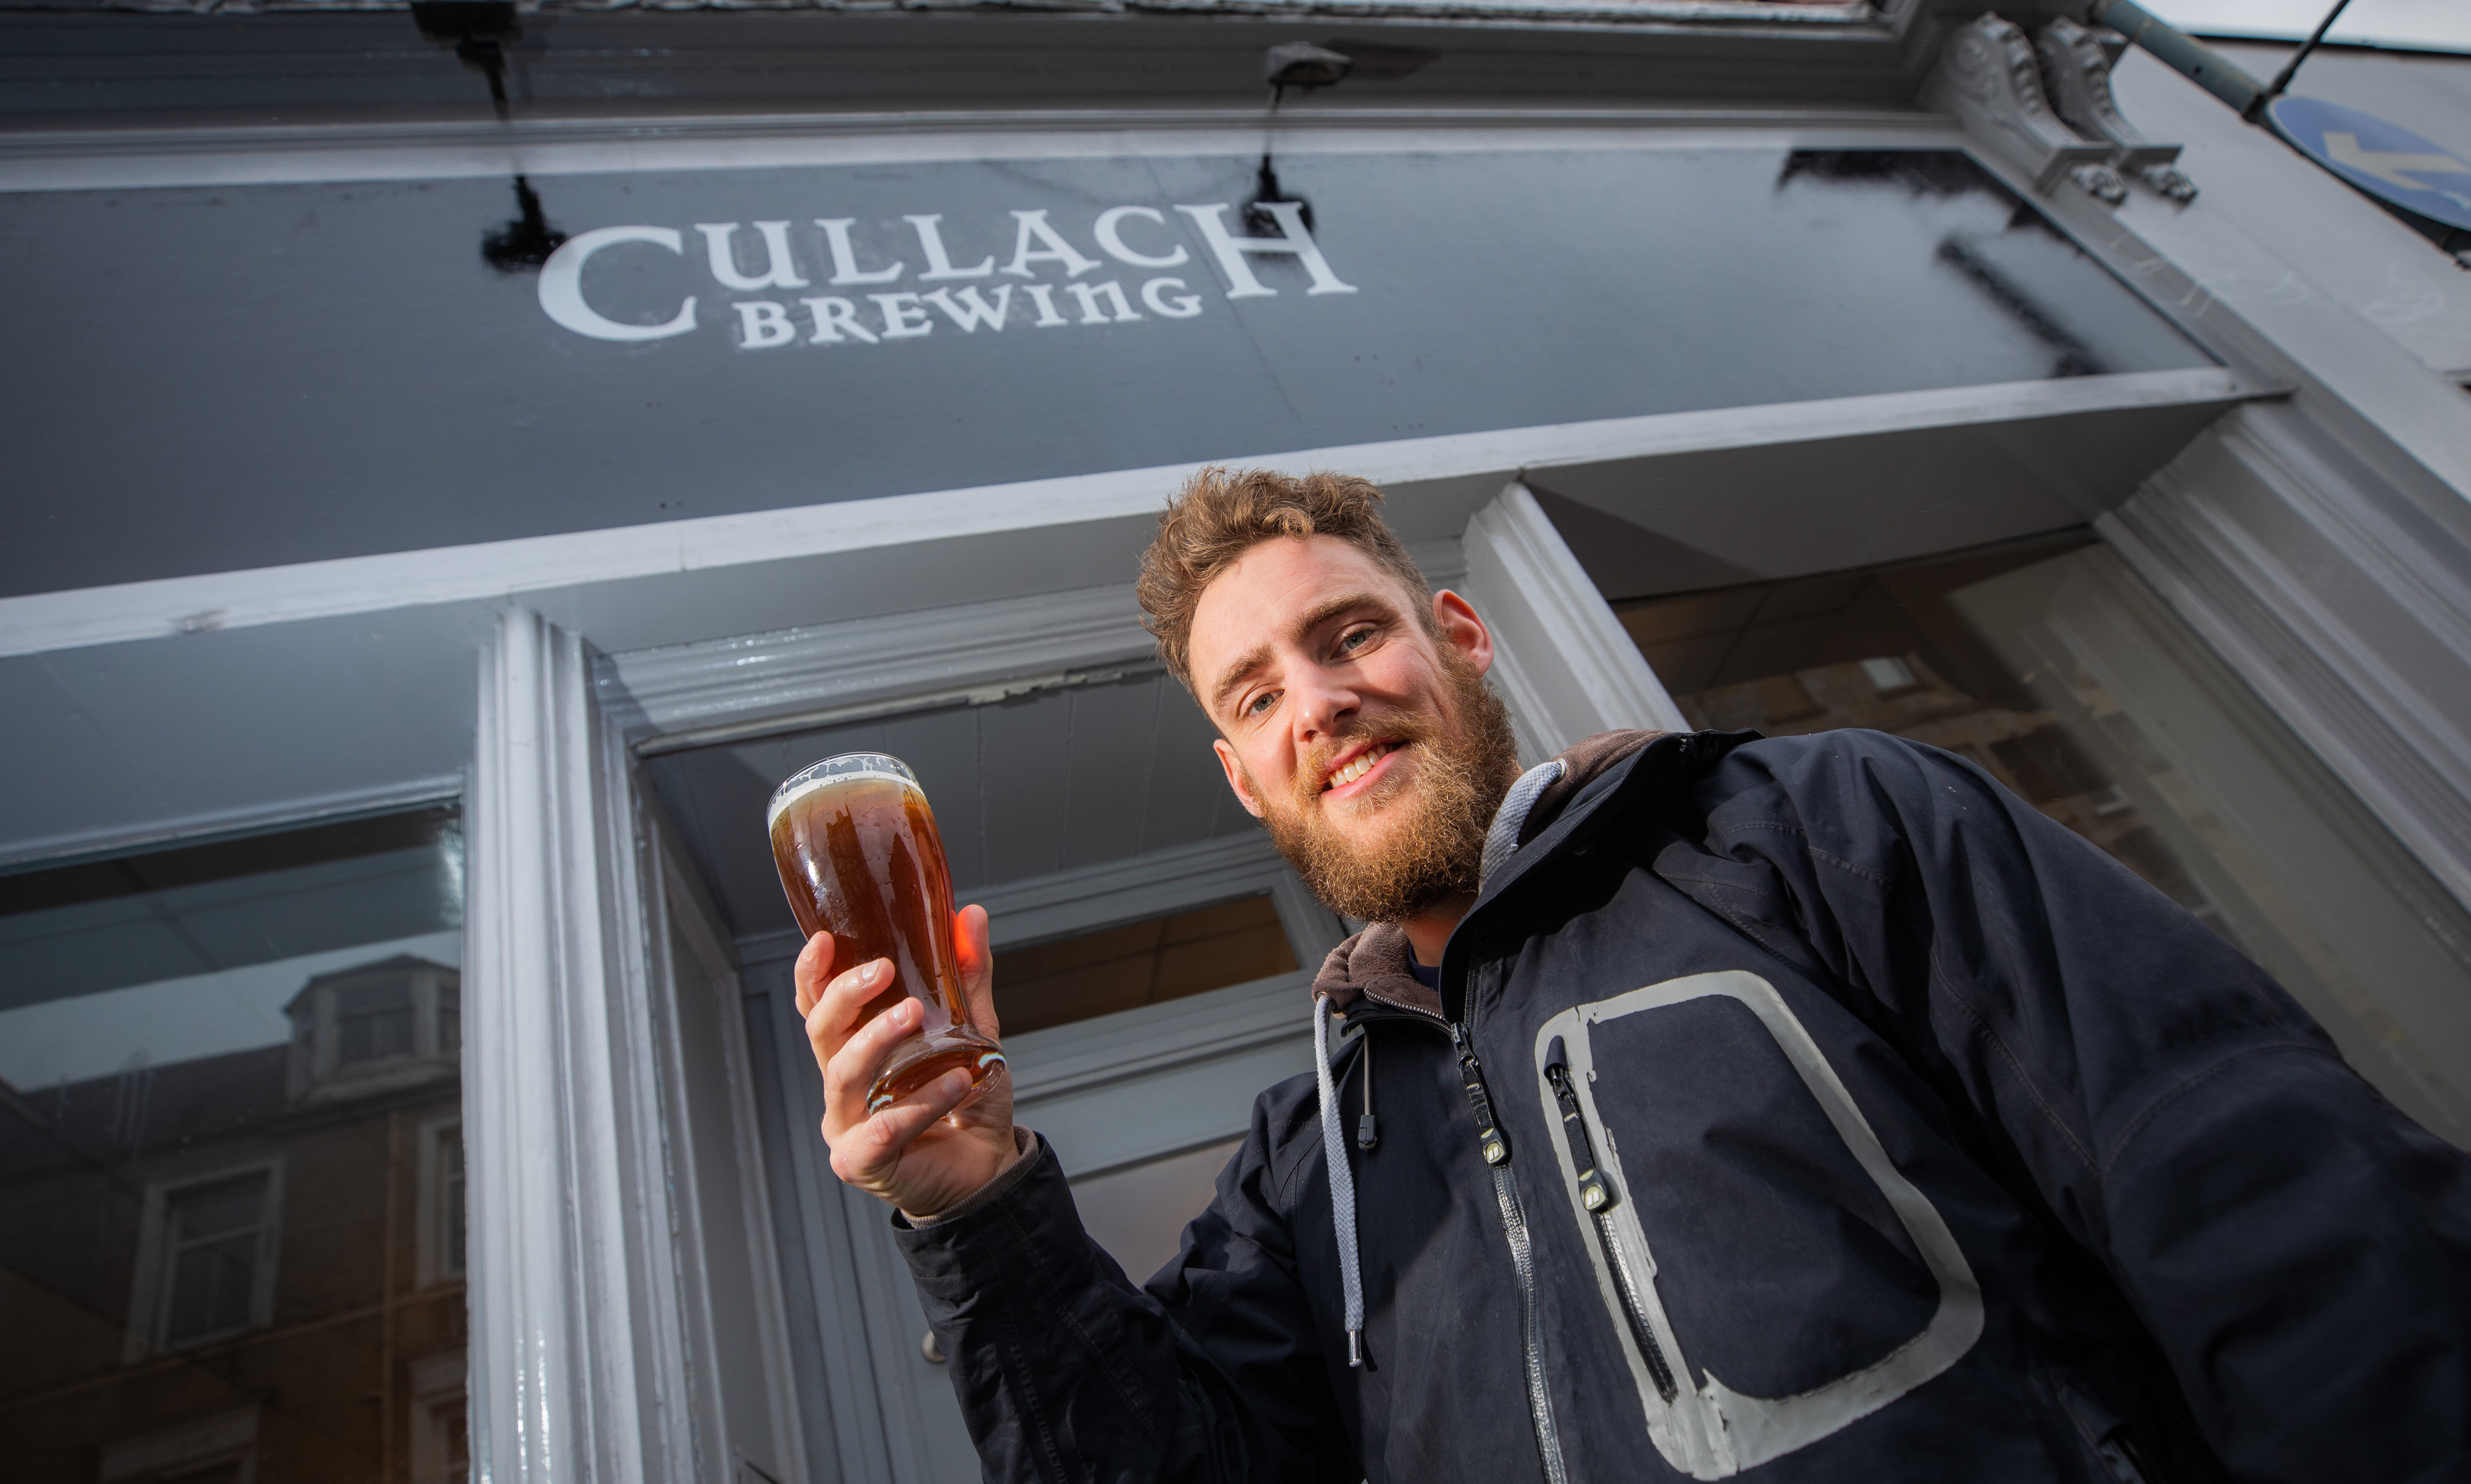 Will Bond outside Cullach Brewing in Perth